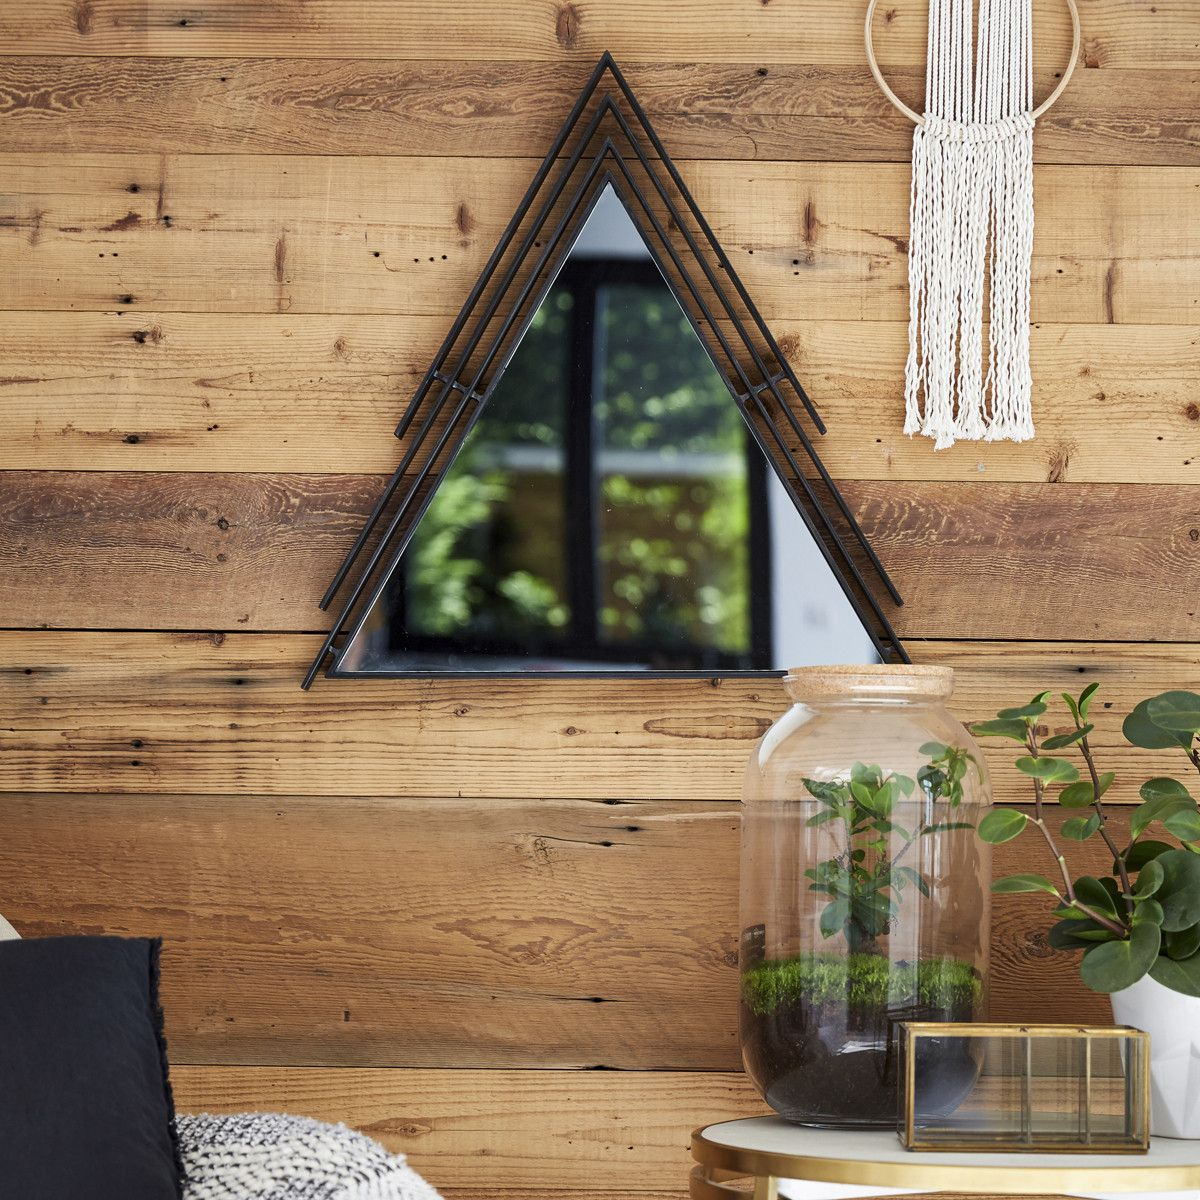 Maho Triangular Painted Metal Framed Mirror 60 In 2020 Mirrors